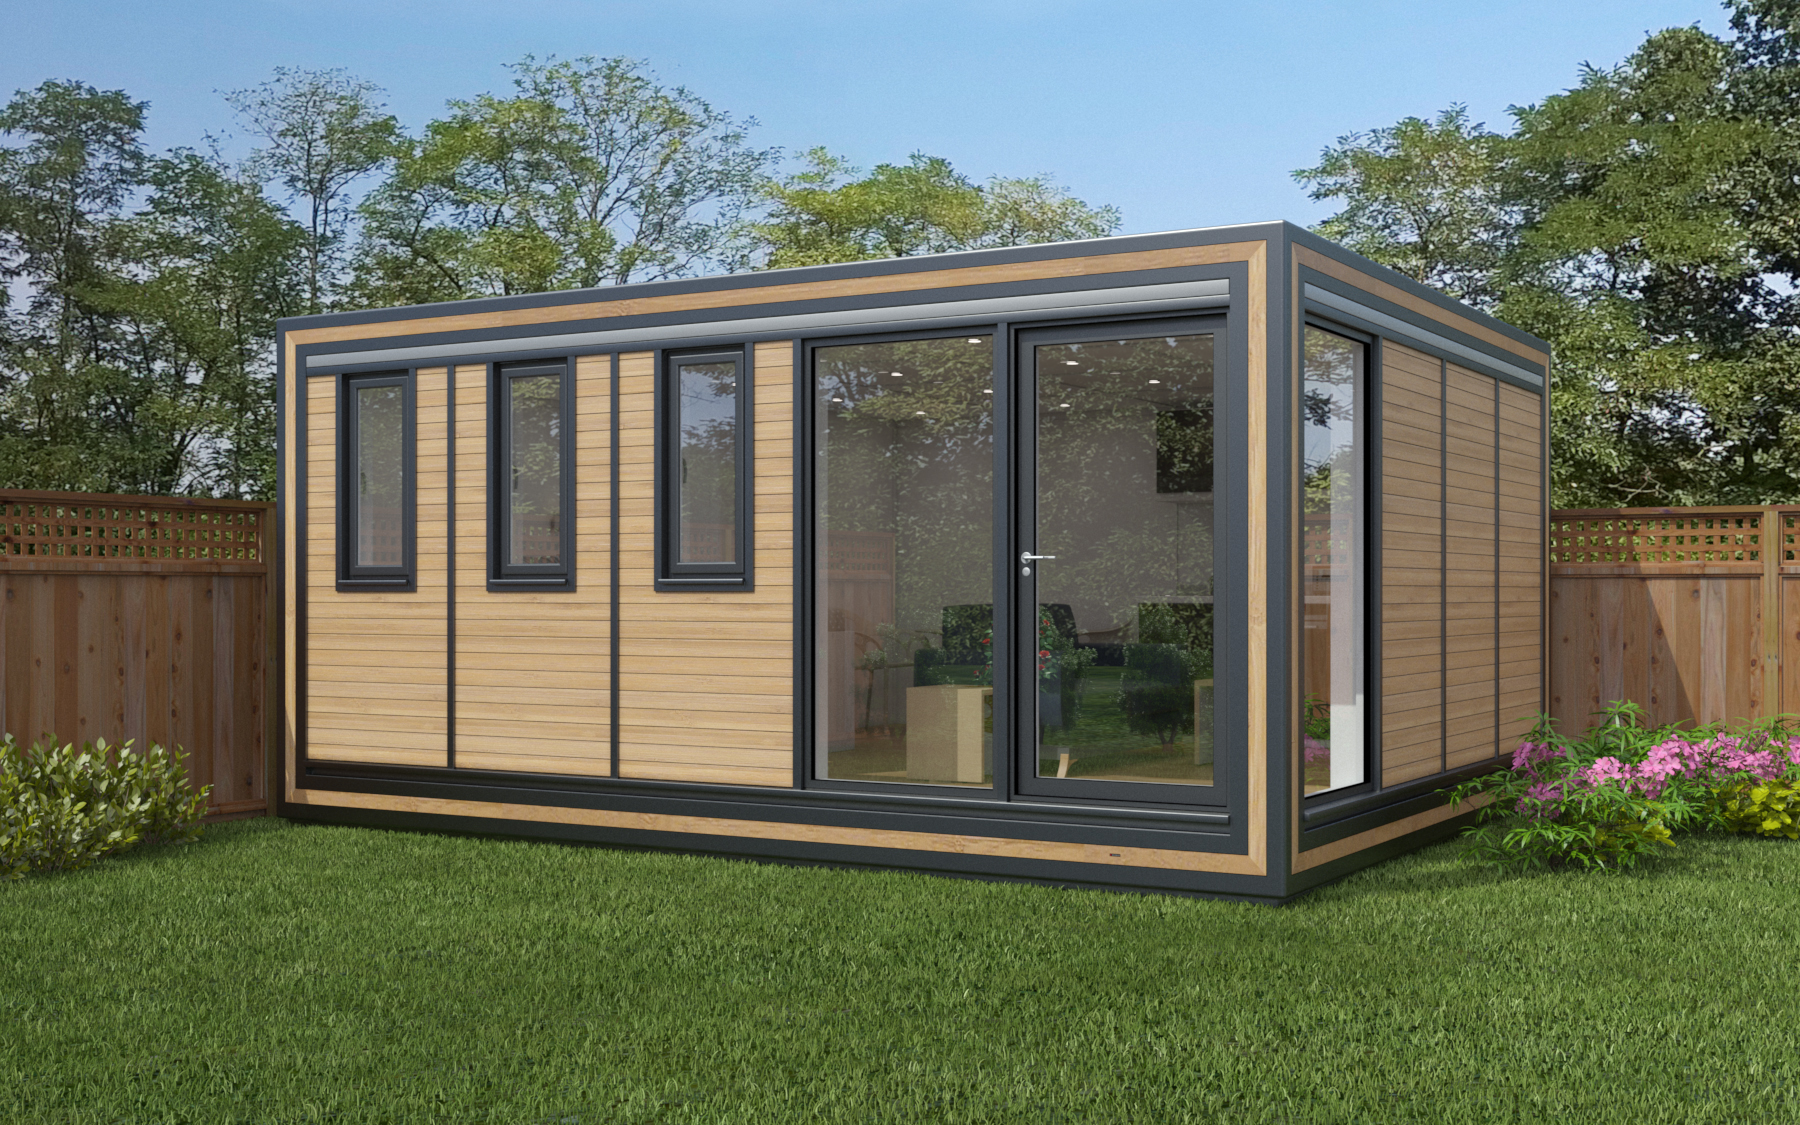 ZEDBOX 540  (5 x 4)  Internal Size: 5330 x 4259  External Size: 5800 x 4279  Bed Options: Single or Double  Kitchen Options: Micro Kitchen or Kitchen  Wet Room Options: Yes  Portico: No  Price:  £34,000    Optional Extras    Request Zedbox Catalogue